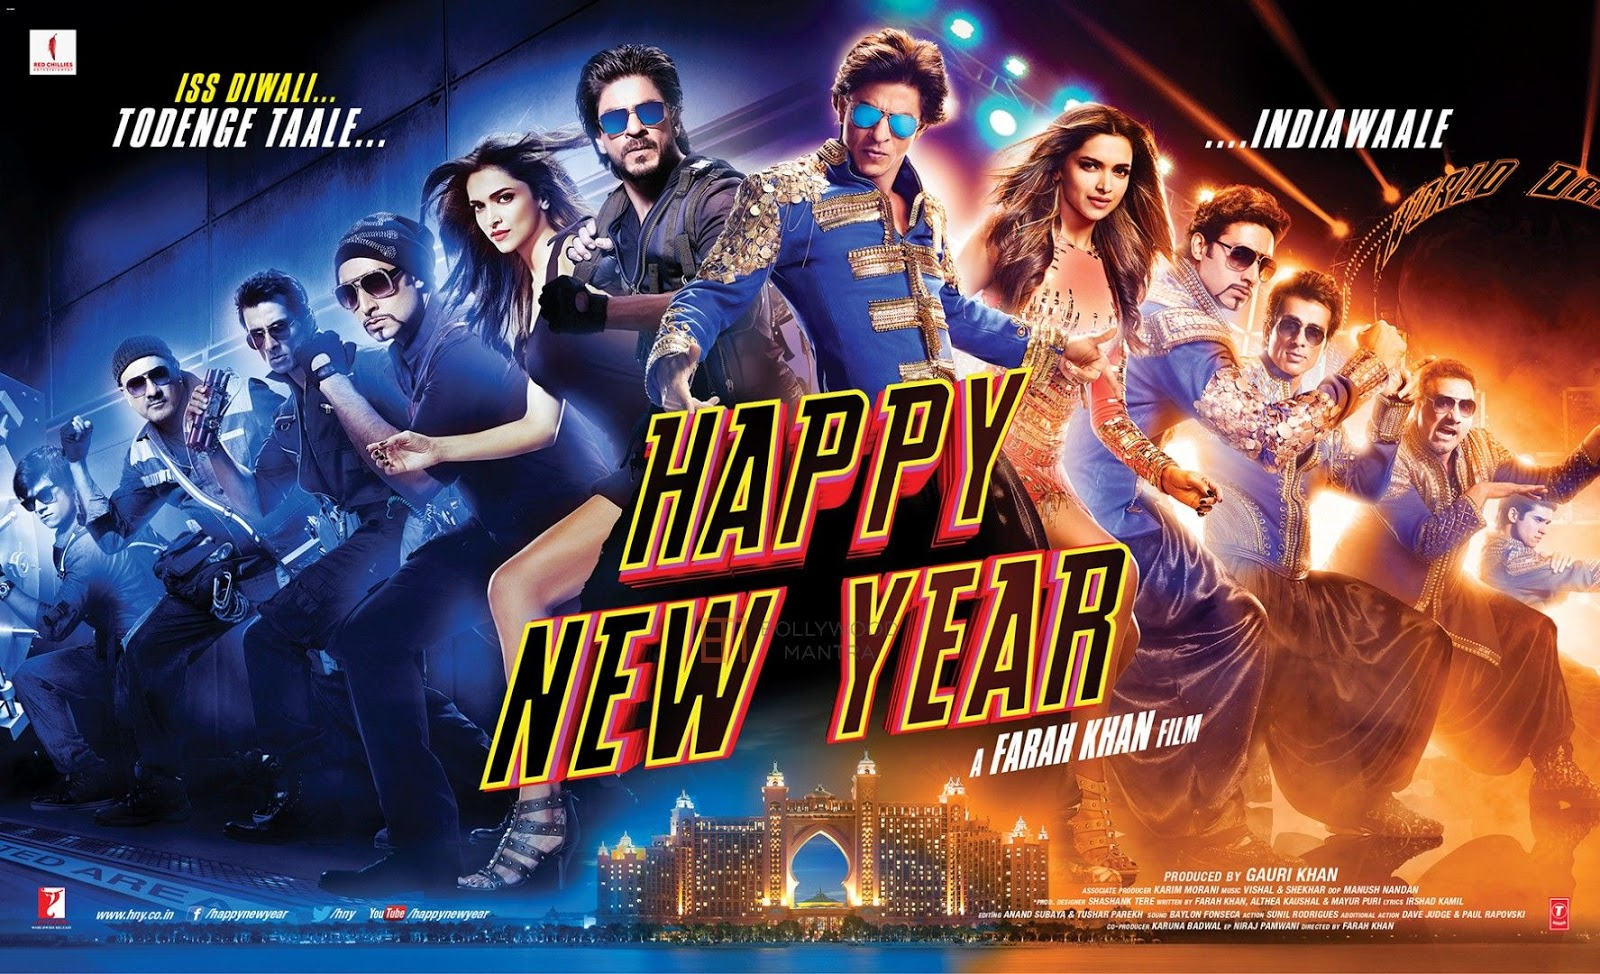 mp4 movies free download for mobile in hindi bollywood 2014 - ltt